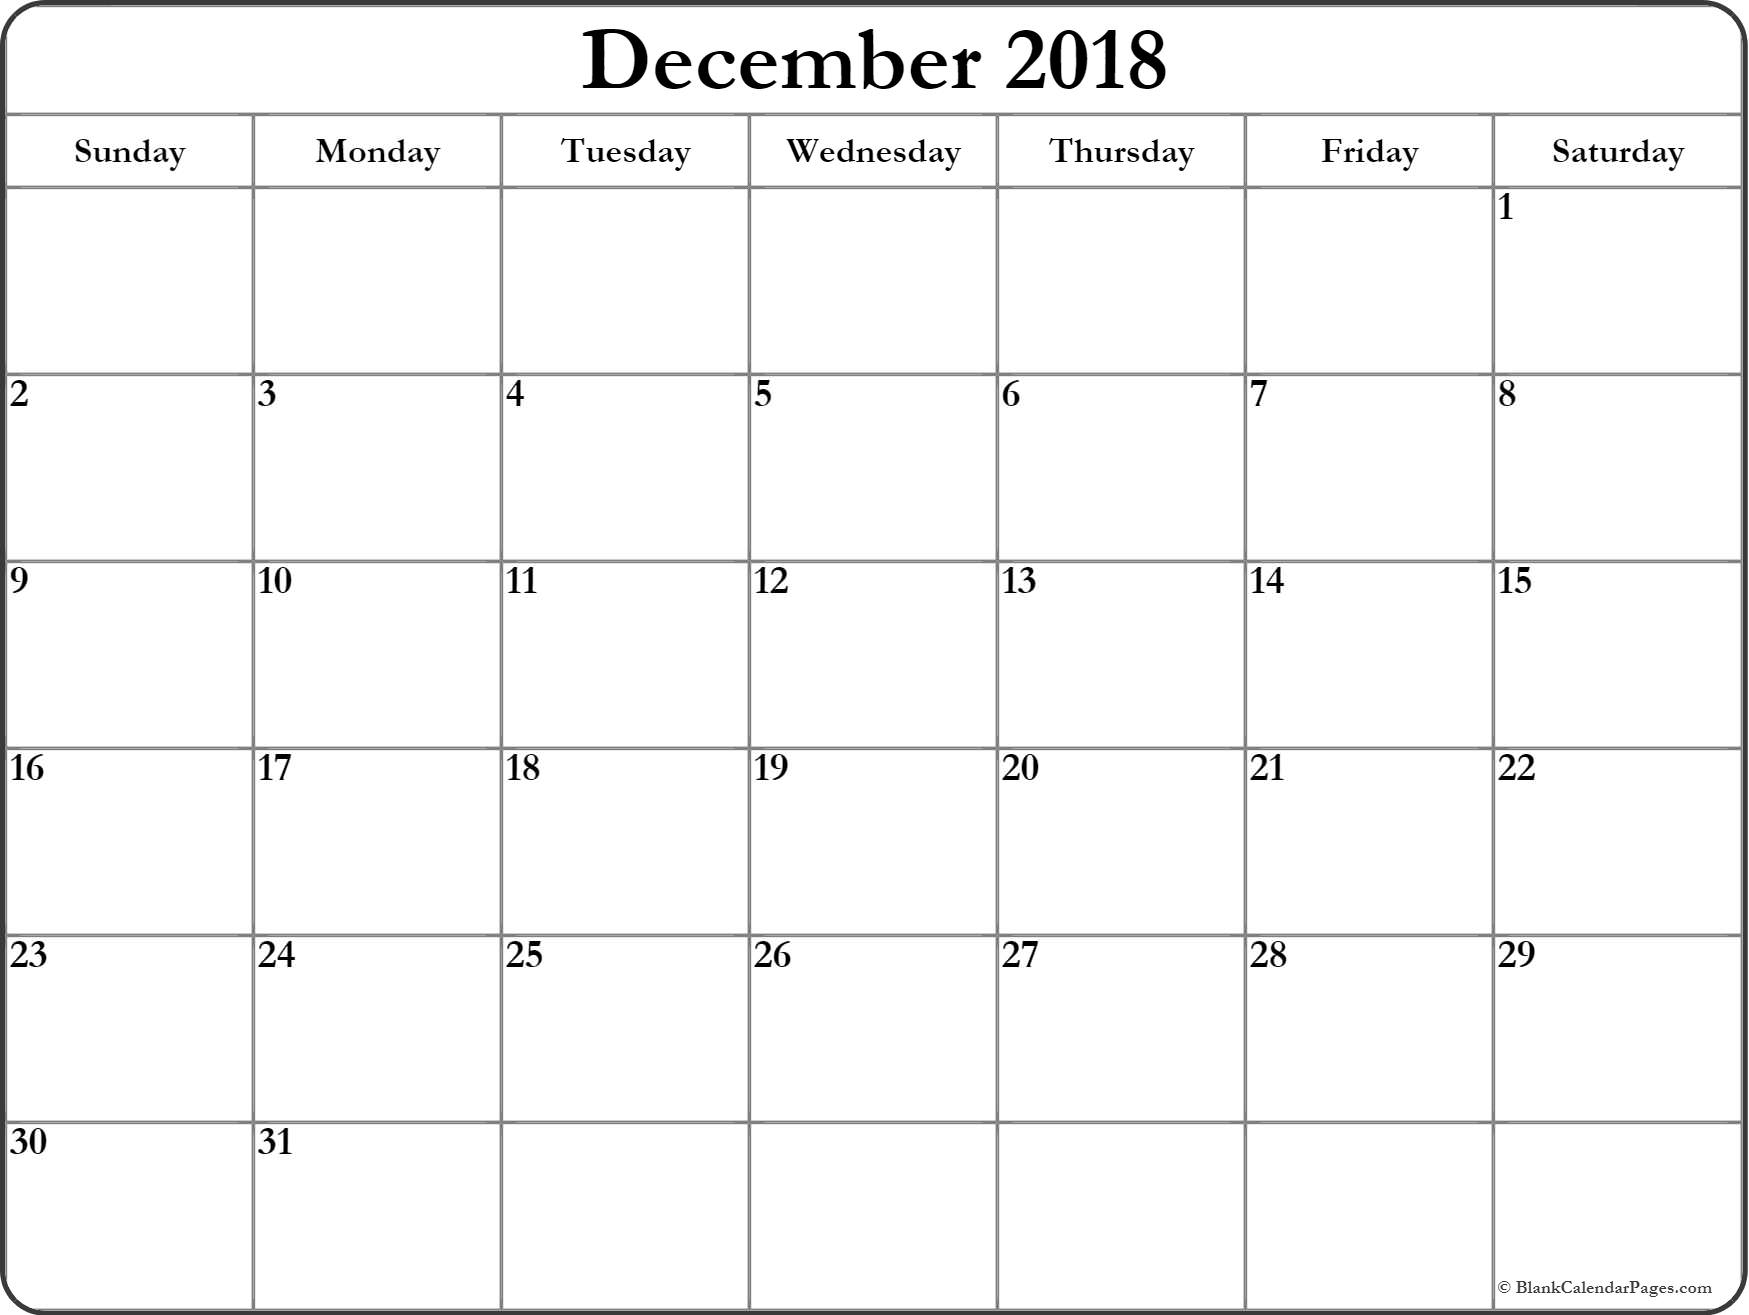 December 2018 Calendar | Free Printable Monthly Calendars inside Blank Printable Calendar December